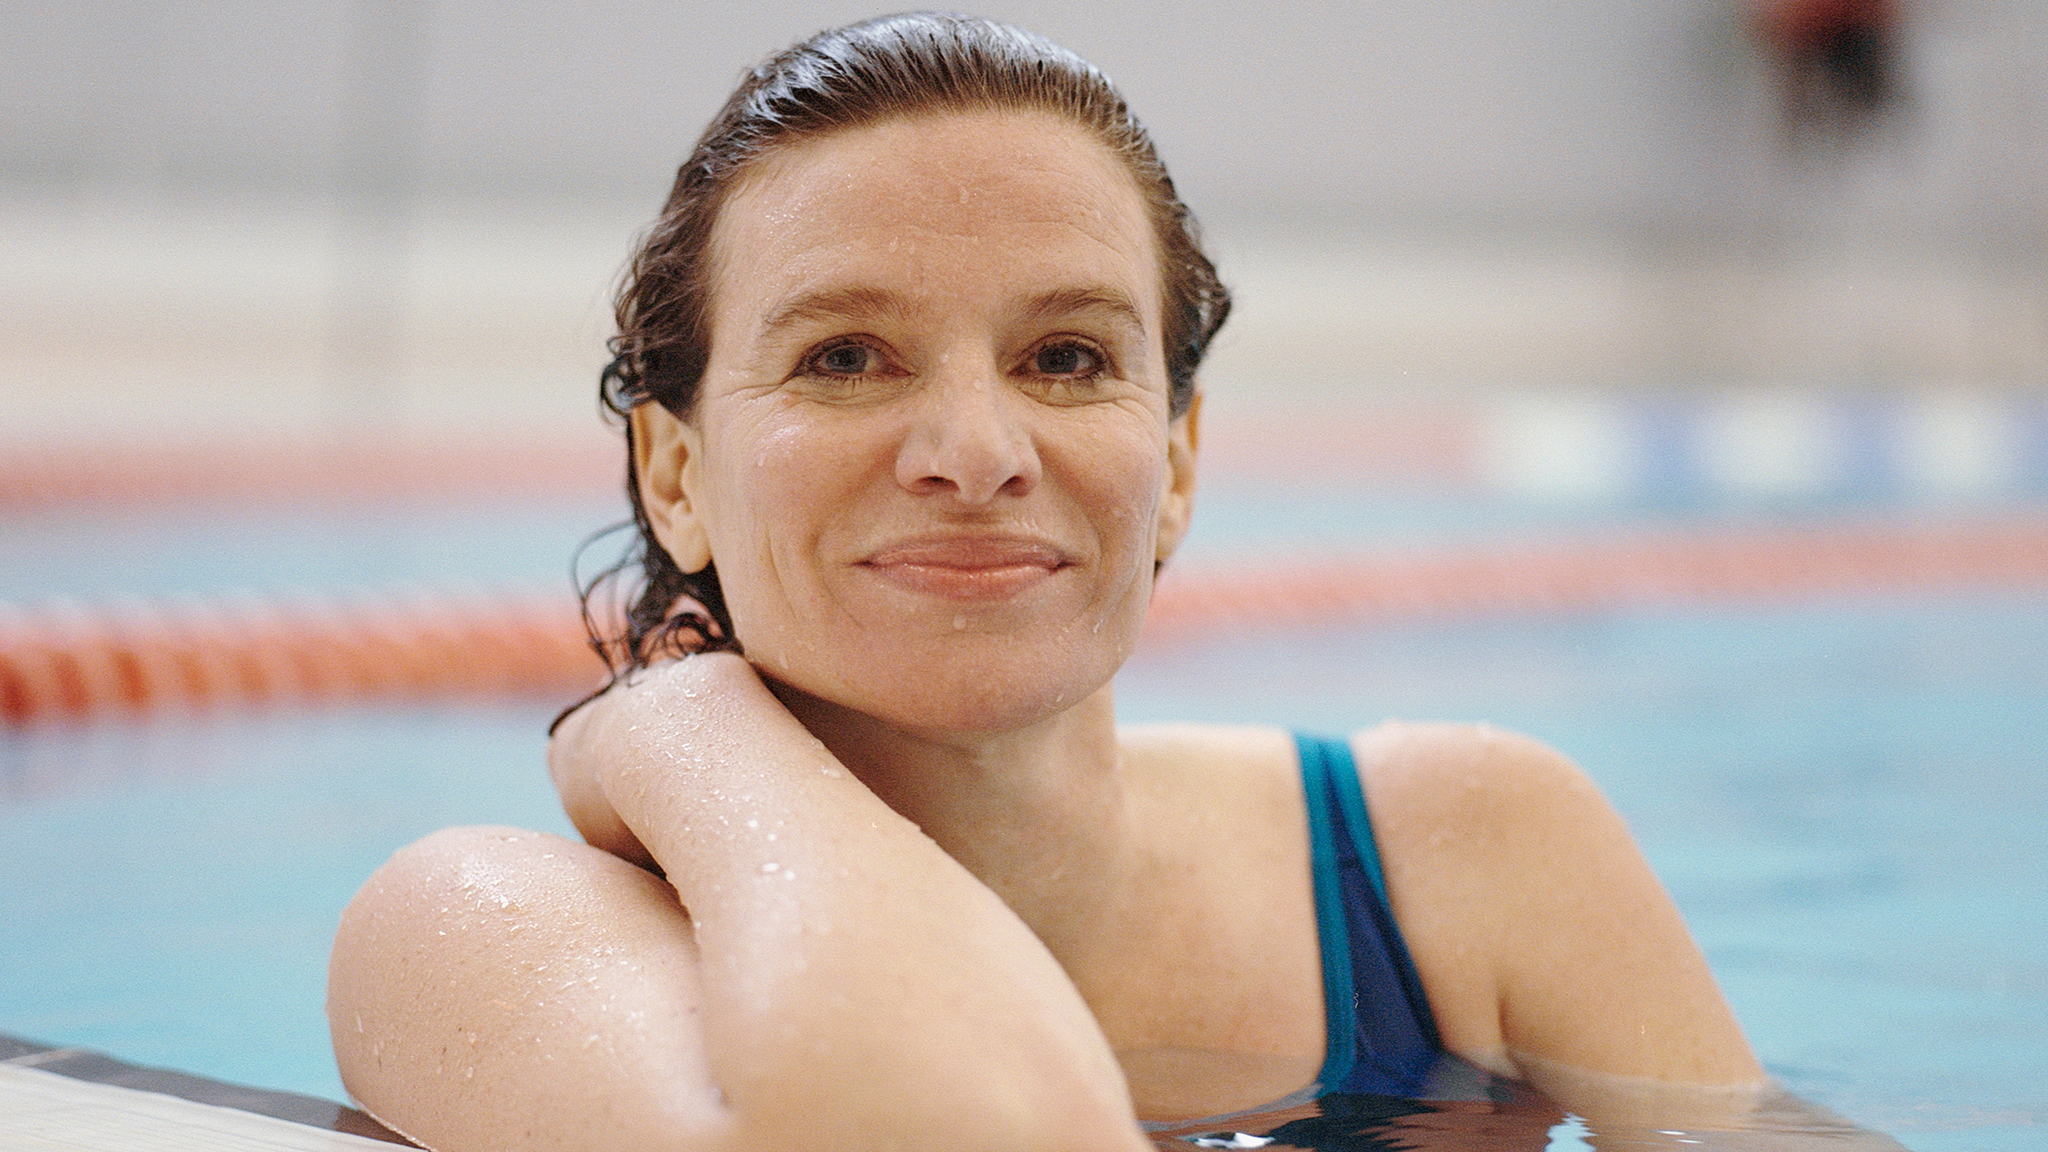 336f7fbeff Mariana Mazzucato on making waves as an economist — and in the pool |  Financial Times